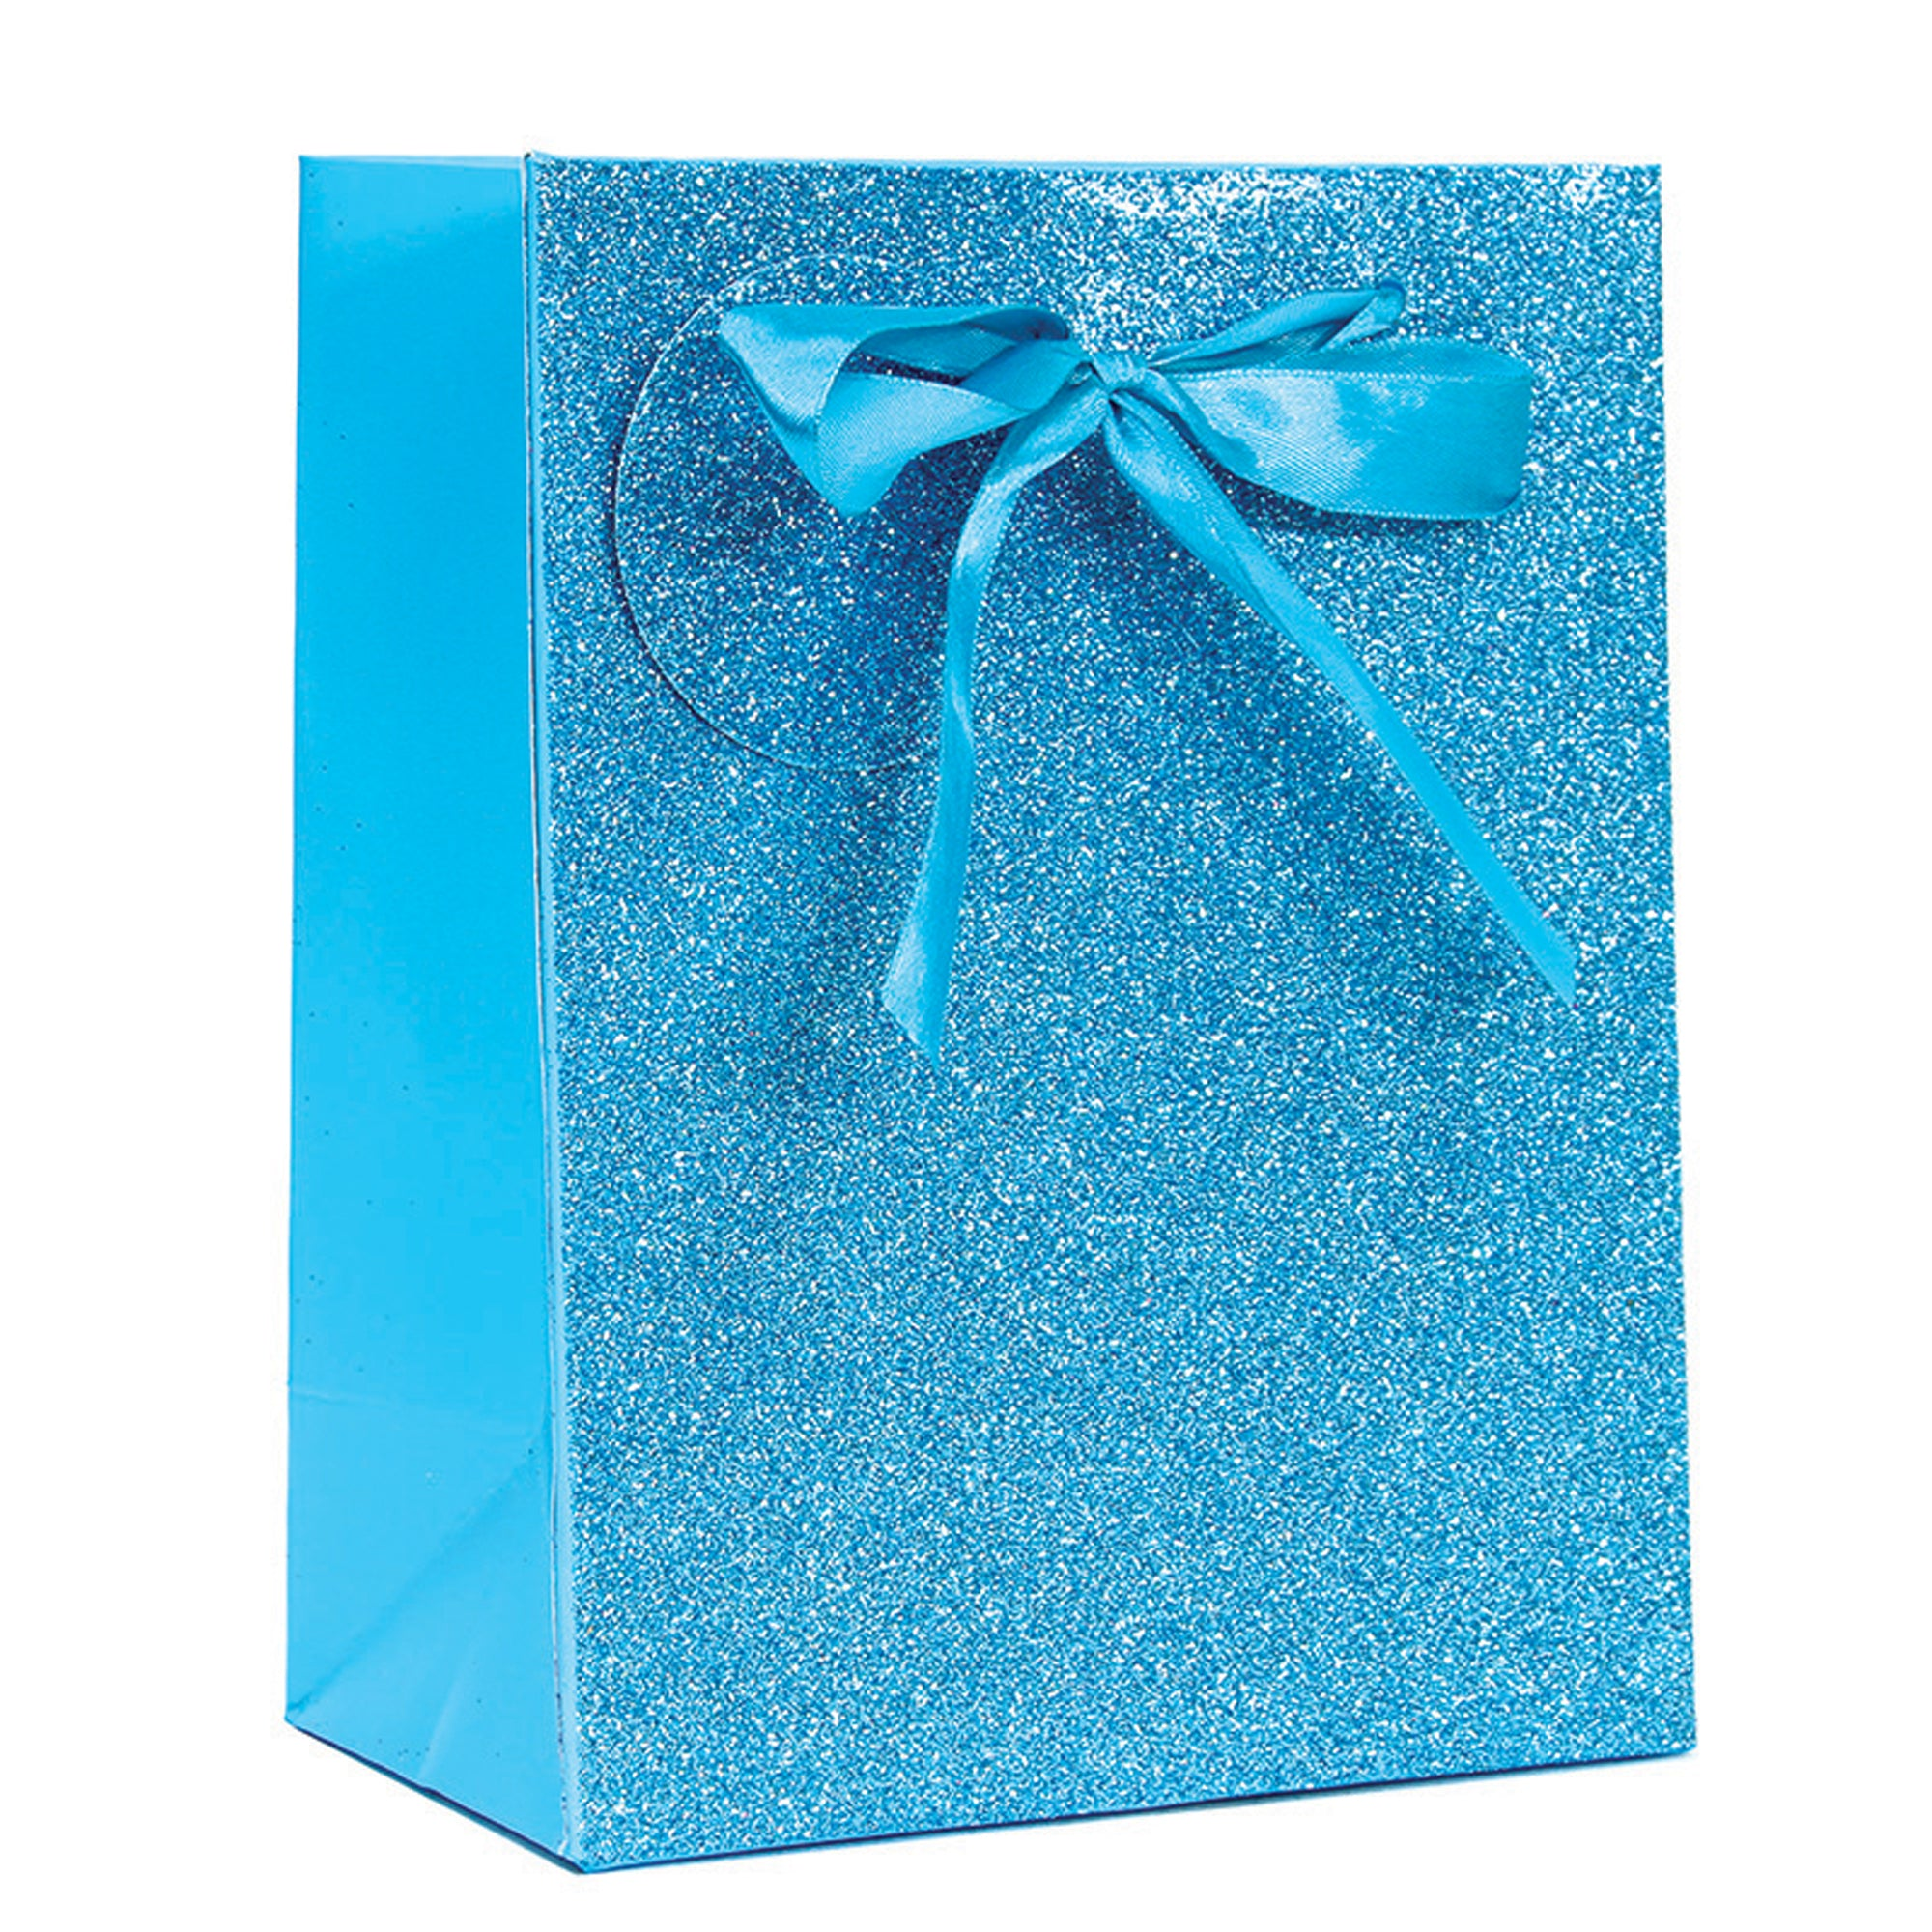 TURQUOISE SPARKLE GLITTER LARGE GIFT BAG